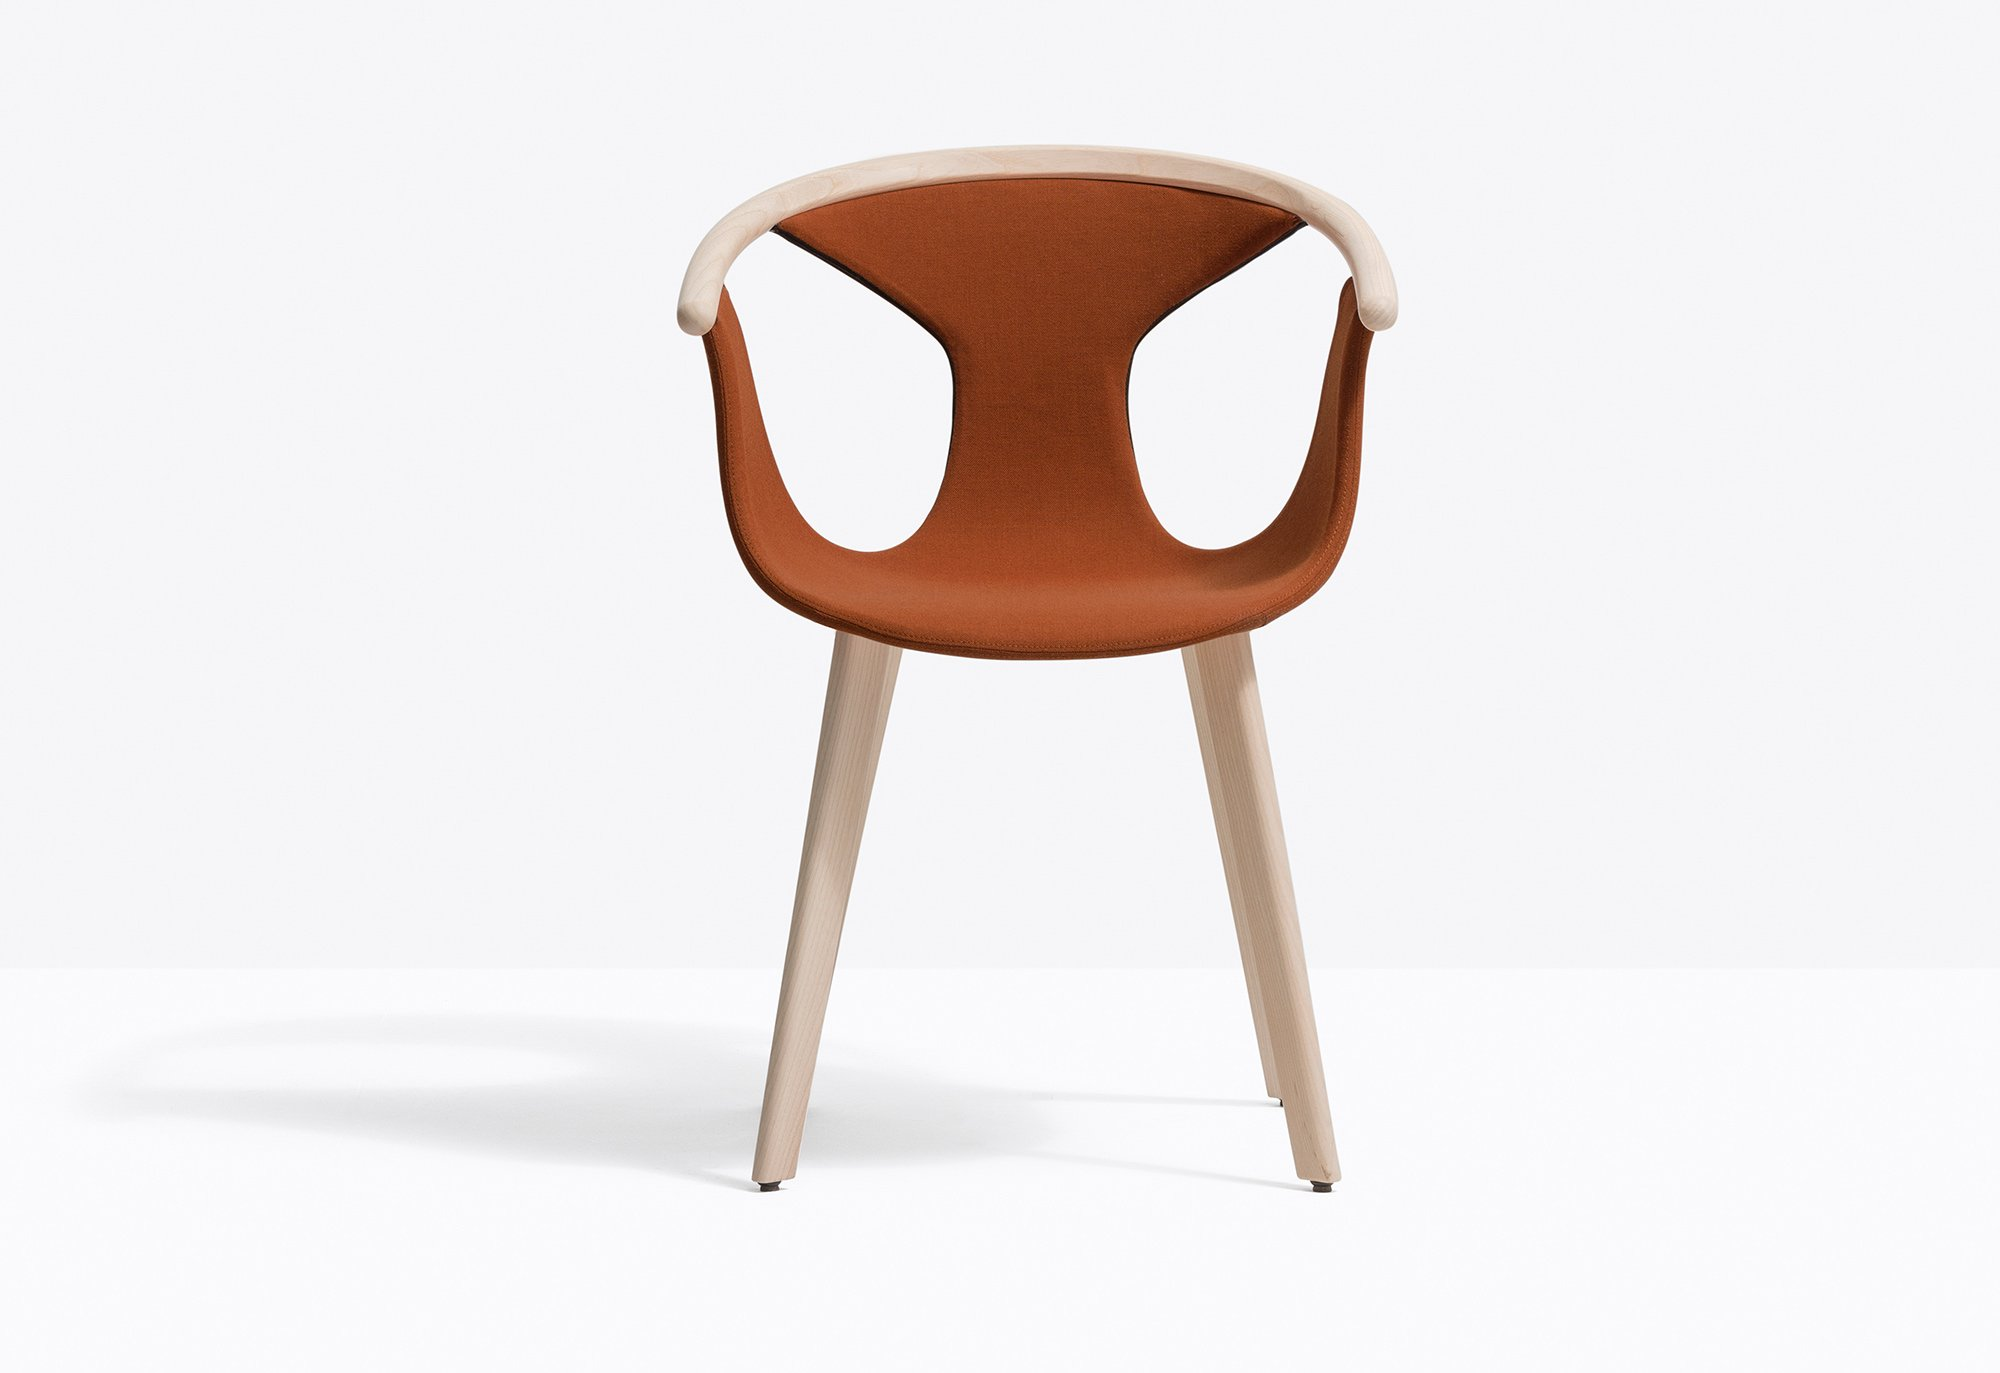 Fox Soft Chair from Pedrali, designed by Patrick Norguet